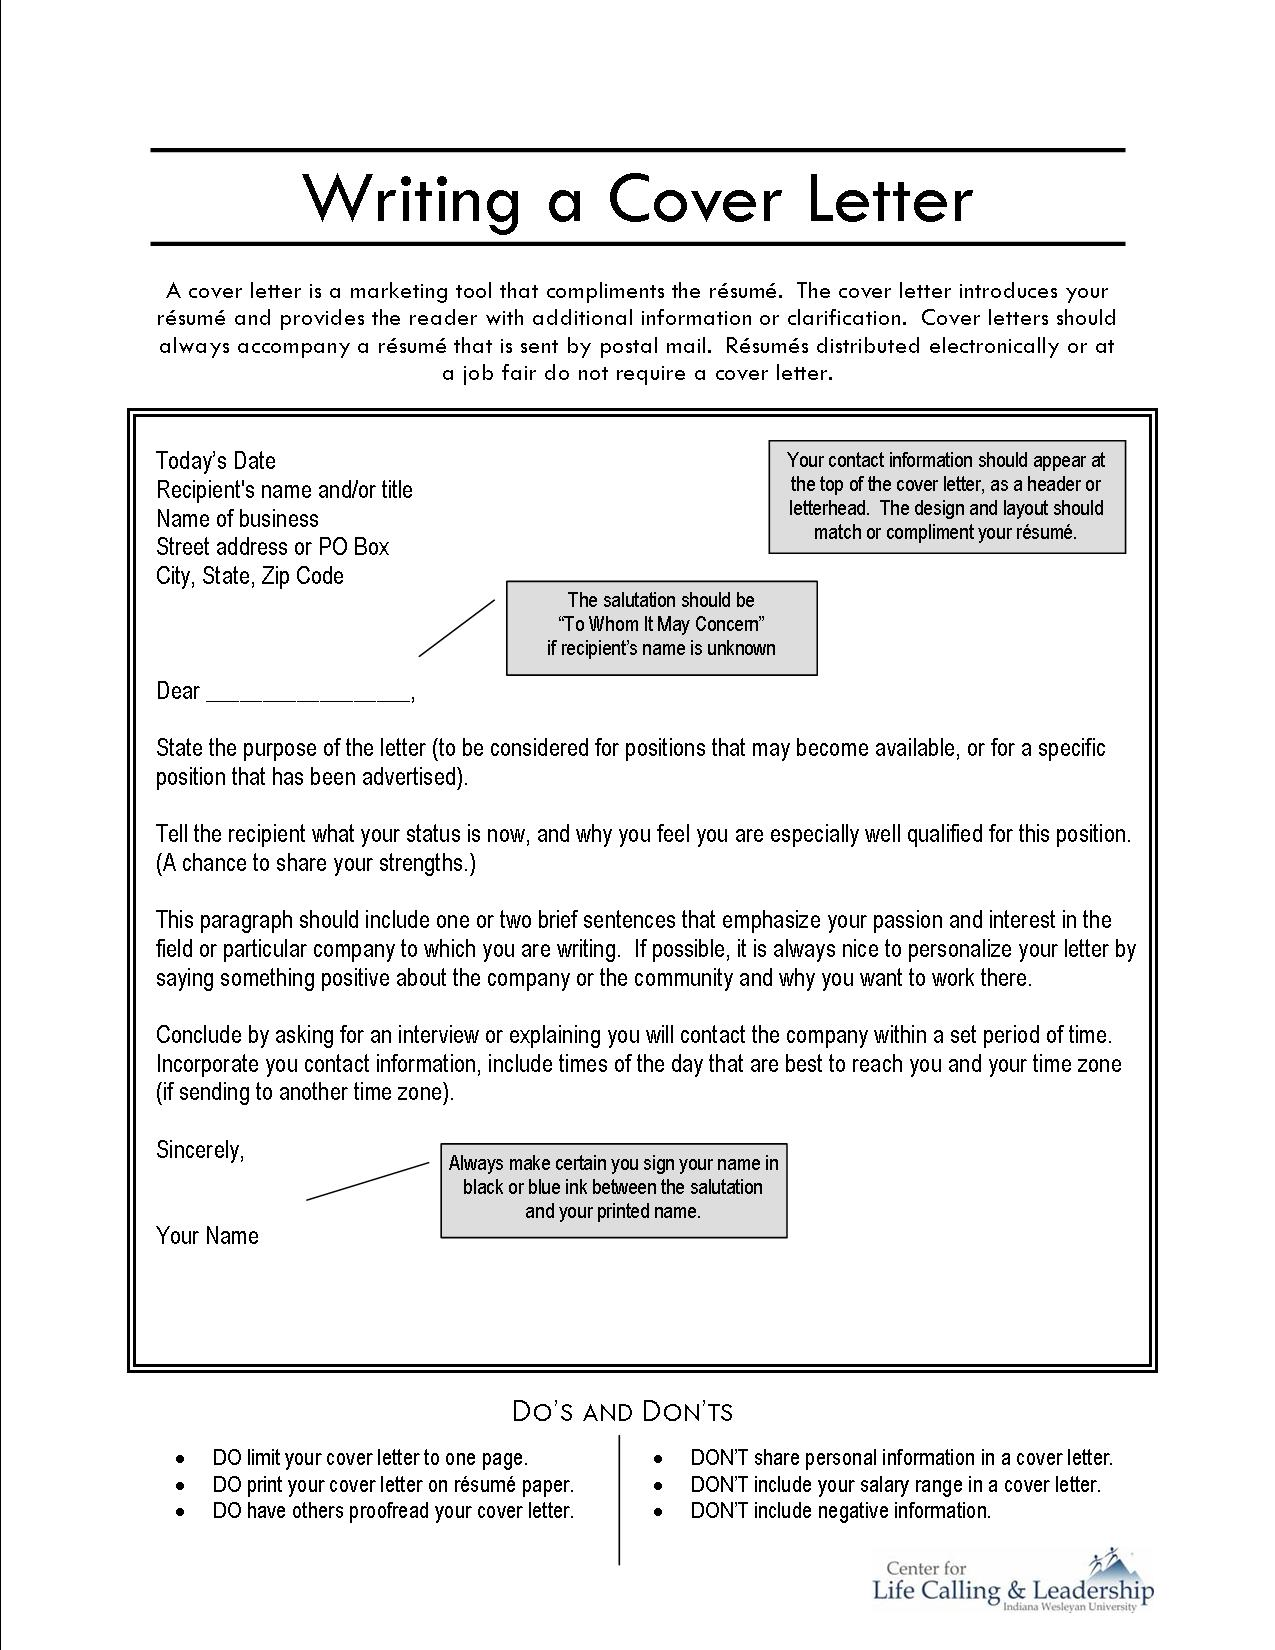 How To Make A Resume And Cover Letter For Free Free Cover Page For Resume 2016 Samplebusinessresume